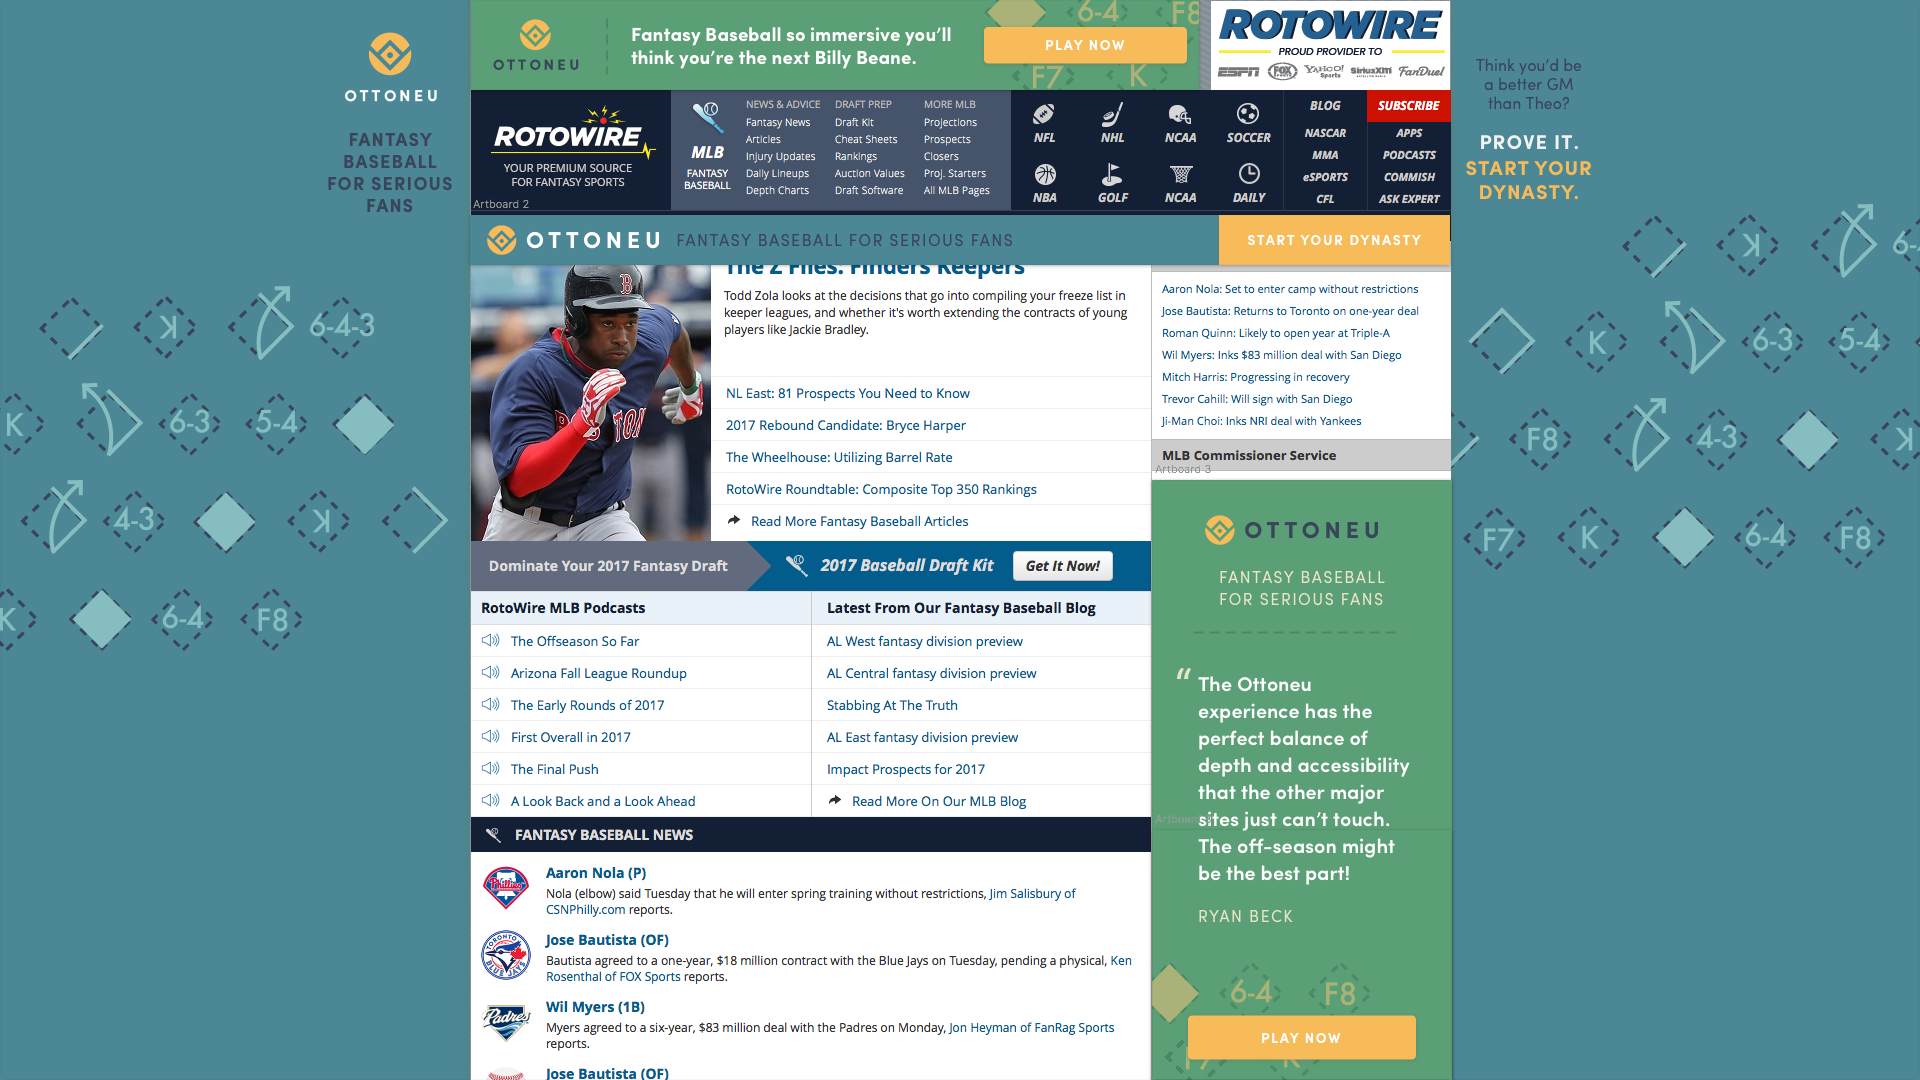 A screenshot of Rotowire website with the Ottoneu ads in the background and top and sides